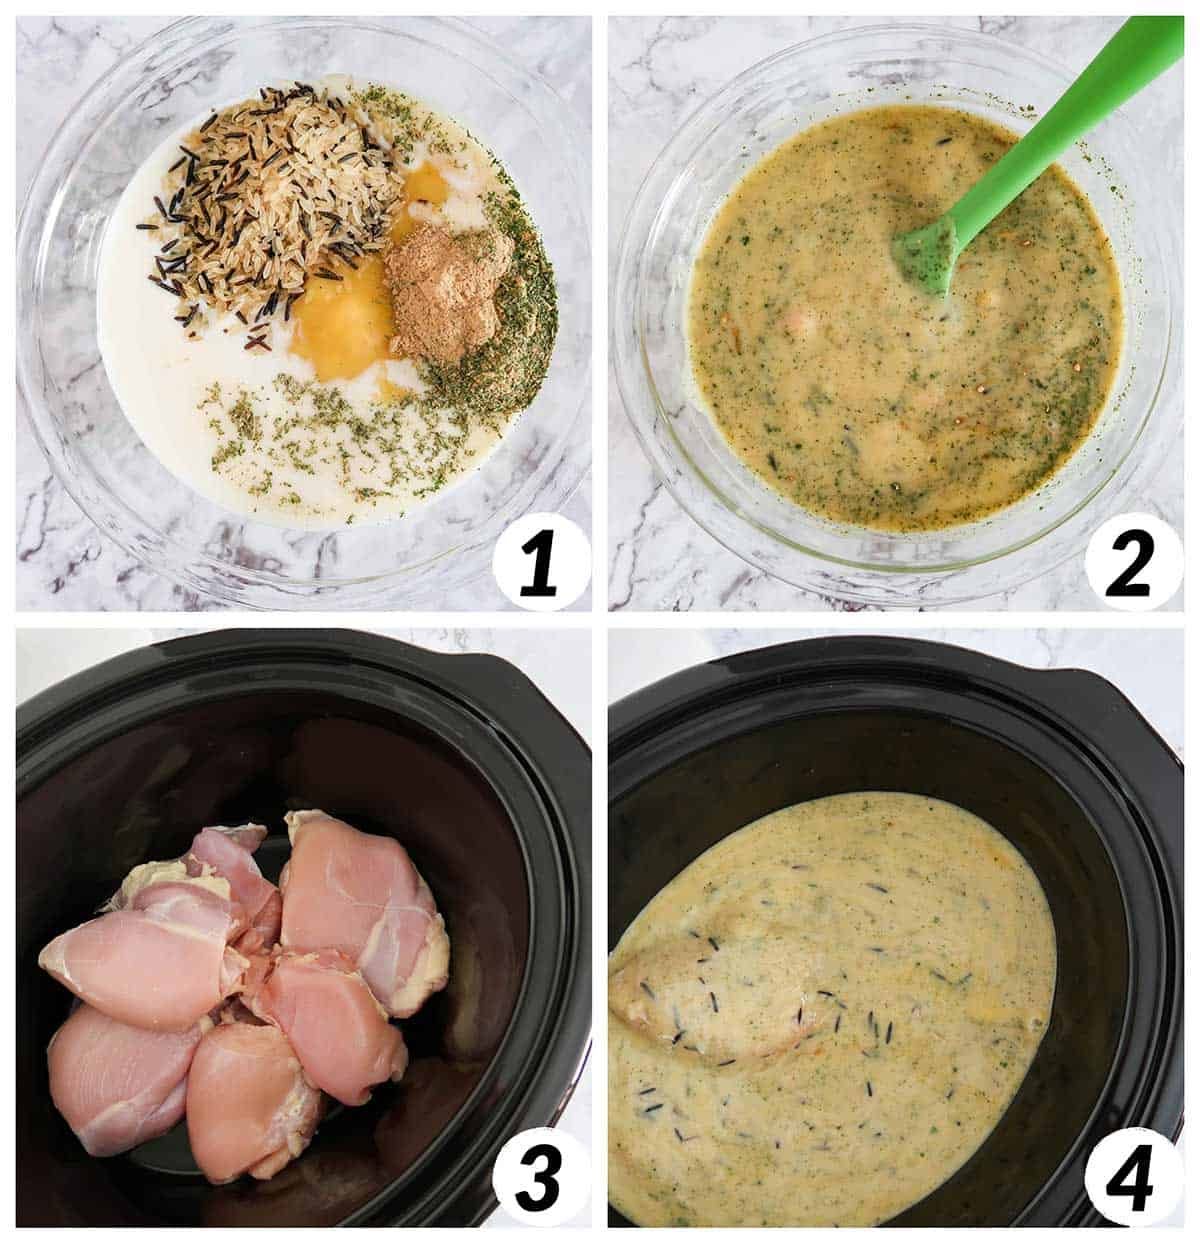 Four panel collage of process shots- mixing together ingredients and combining them in the slow cooker.